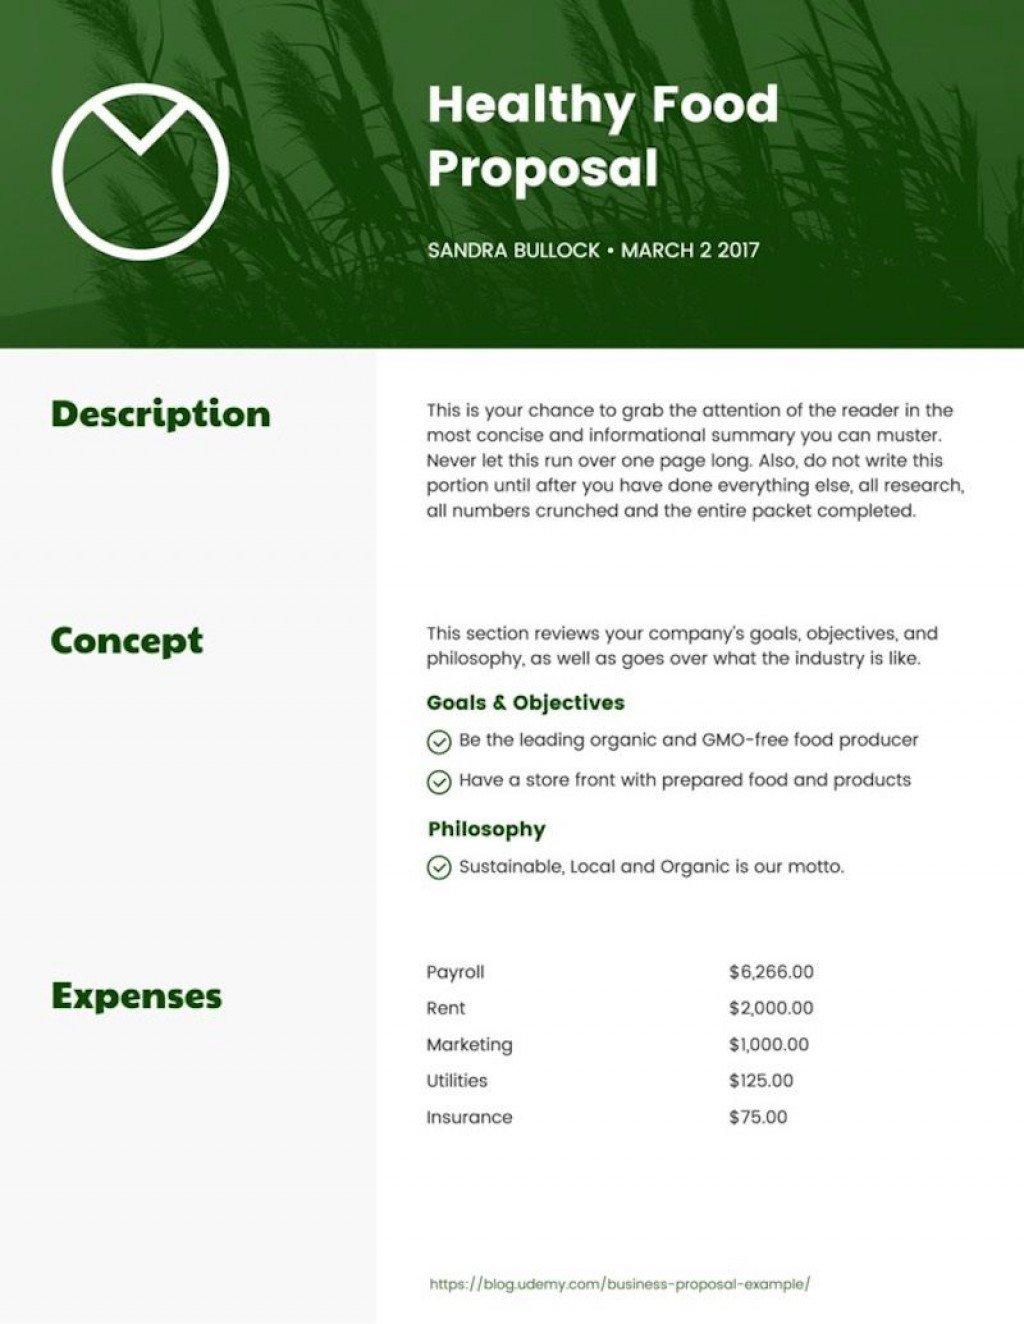 004 Breathtaking Simple Busines Proposal Template Image  Example Word Doc Basic Plan FreeLarge